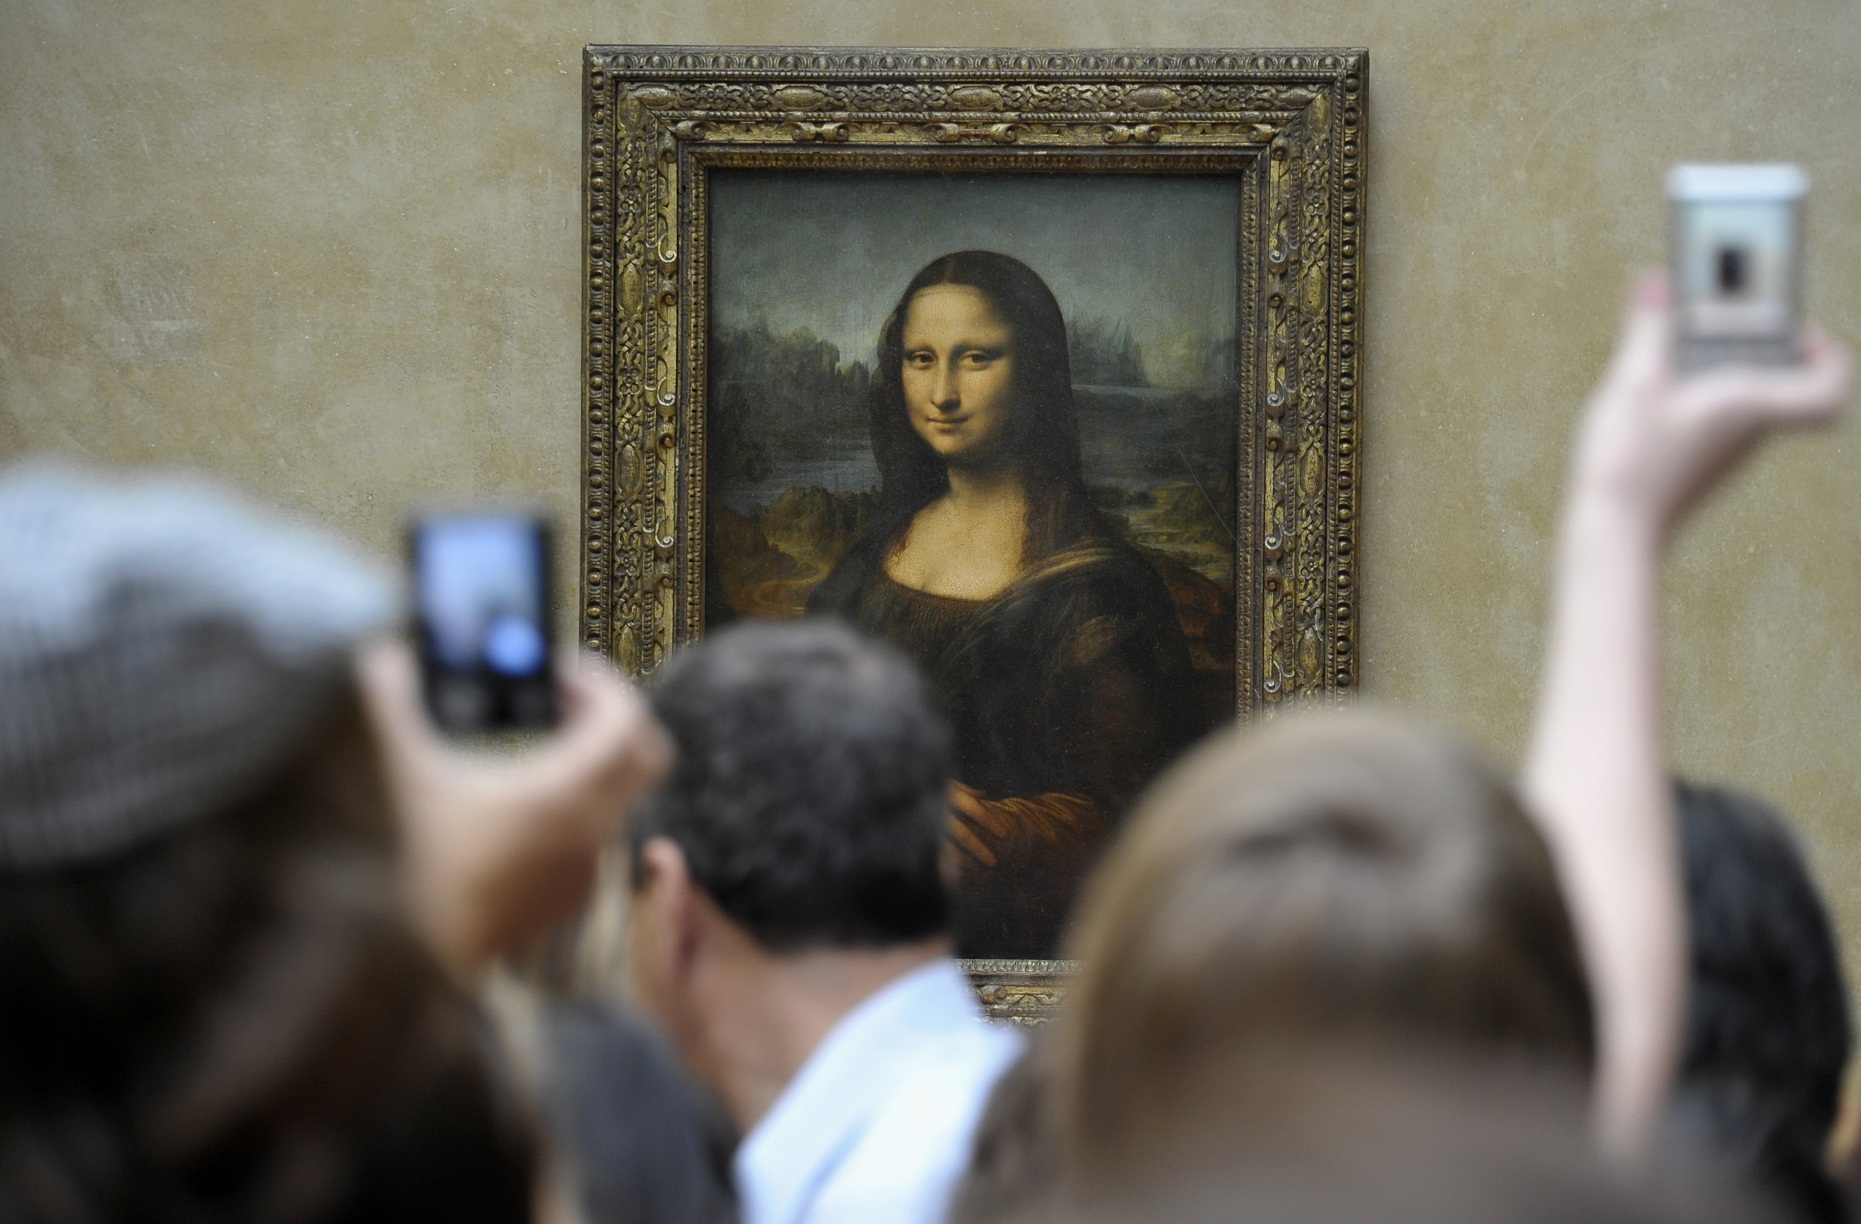 <h1>Why didn't Leonardo da Vinci finish the Mona Lisa?</h1><h2>Scientists have found the cause of the damage to the artist's hand</h2>